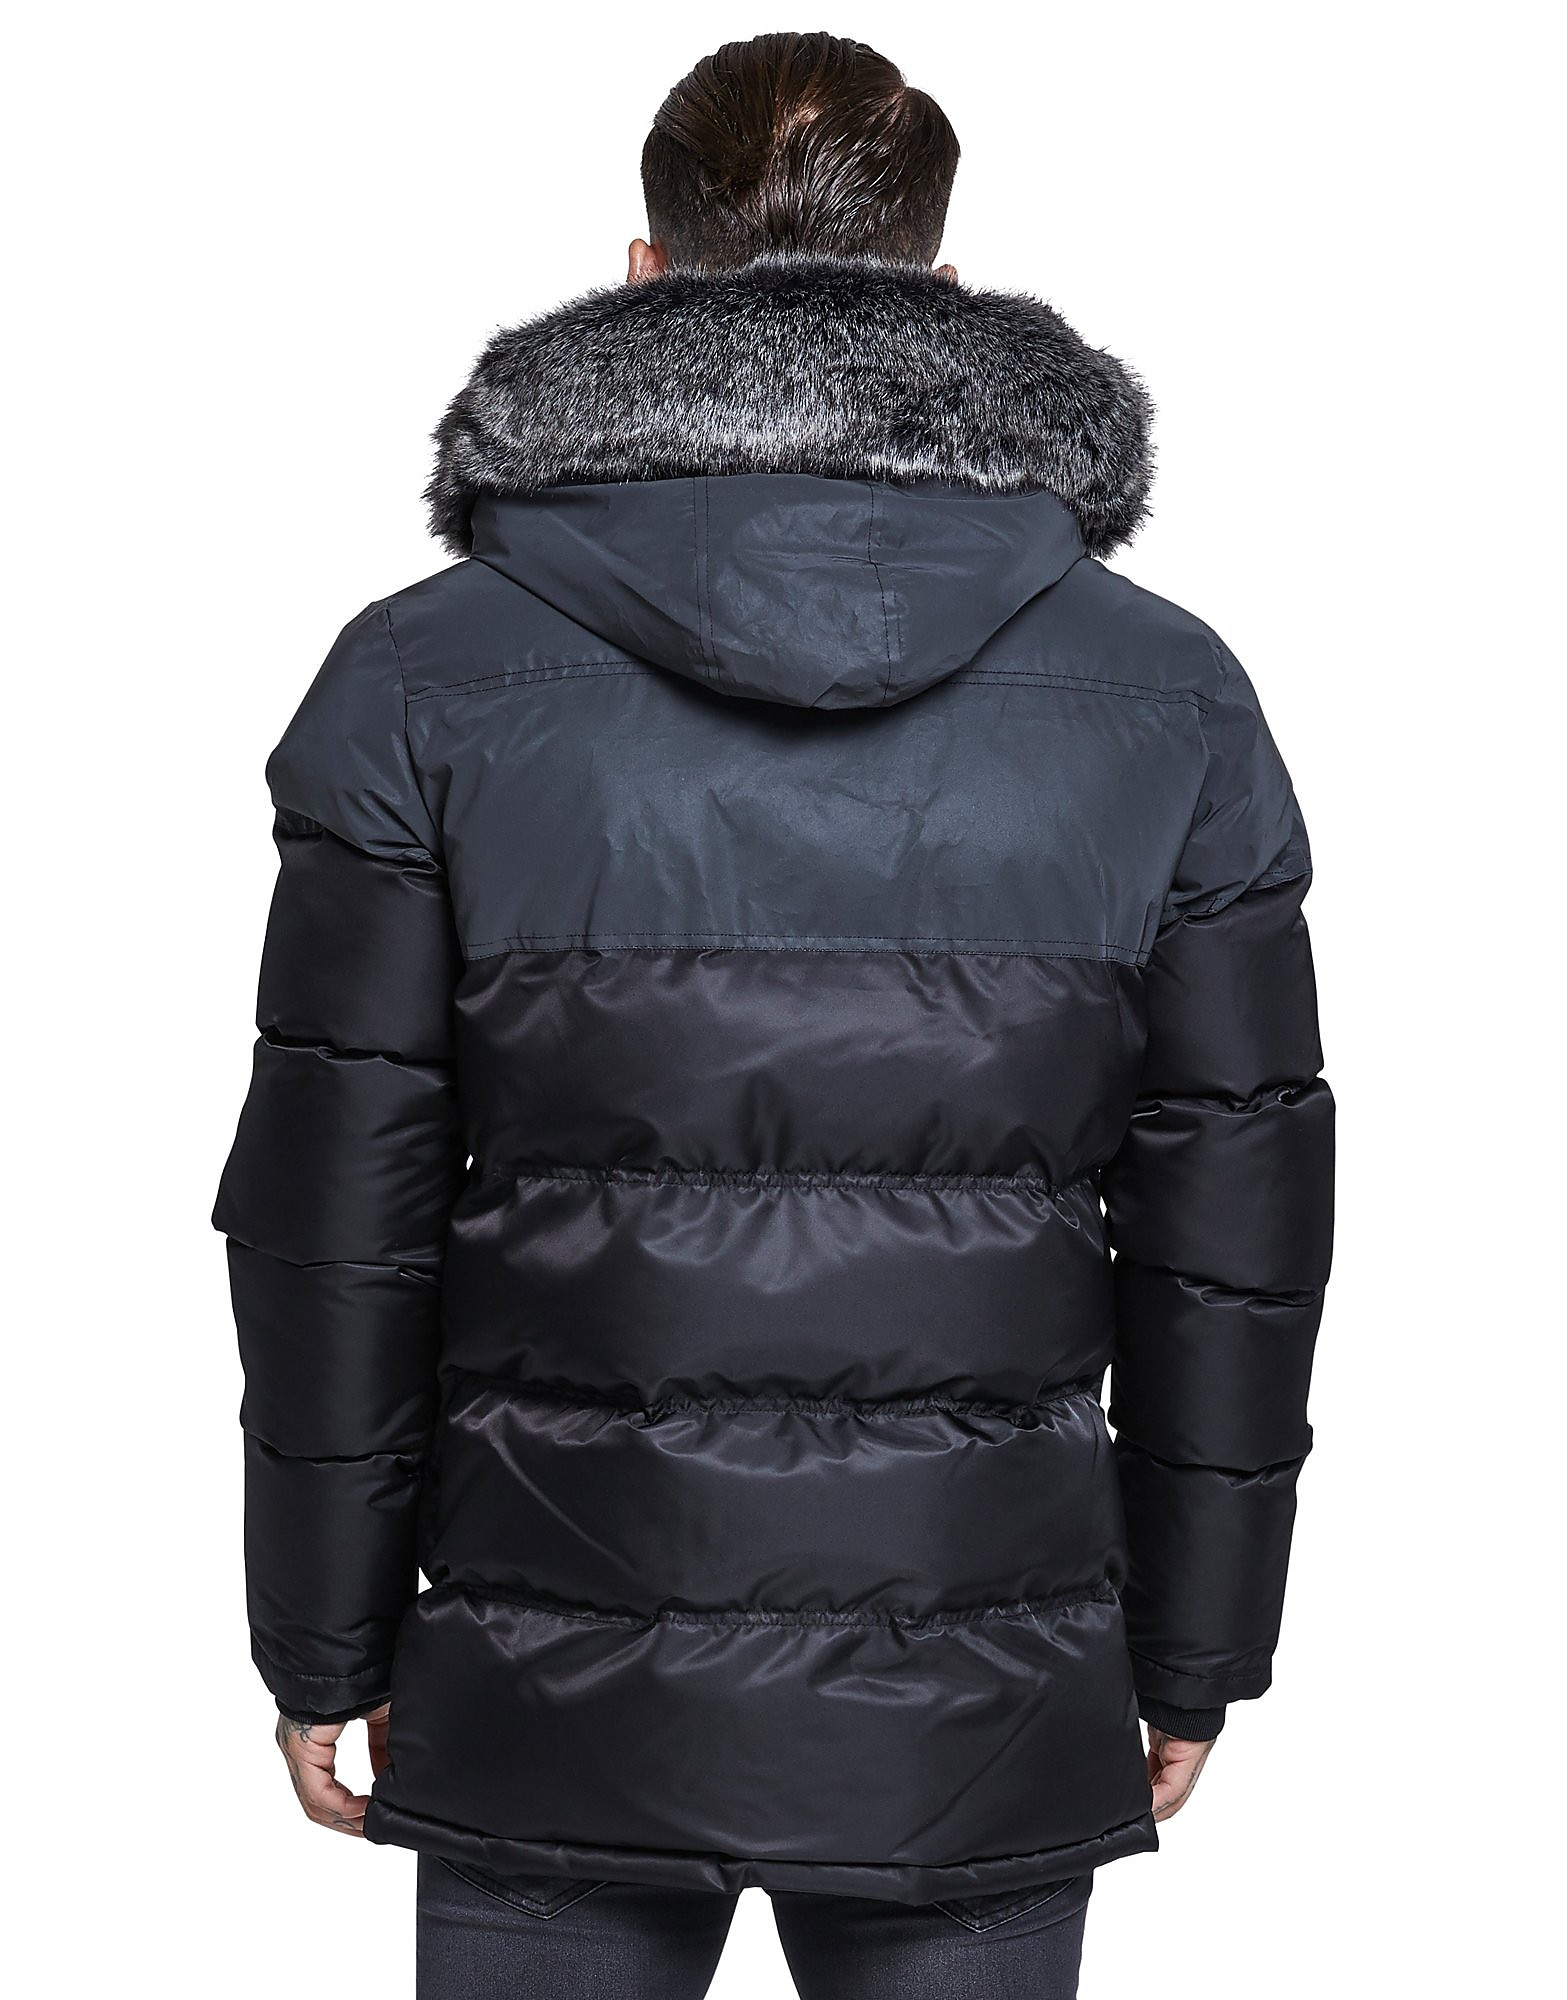 SikSilk Reflective Panel Parka